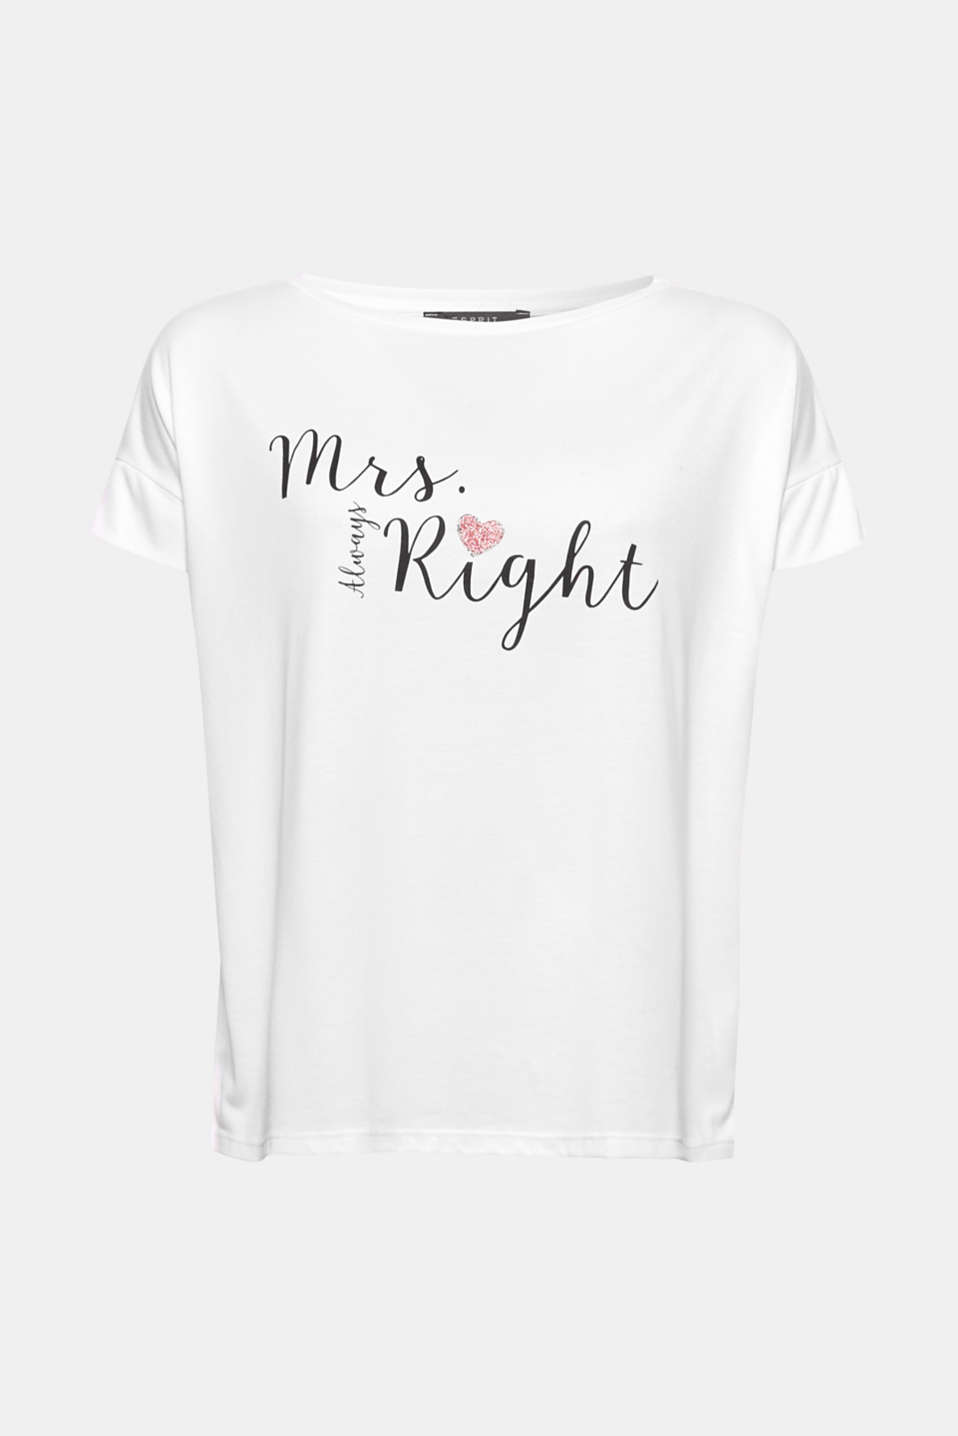 A T-shirt for the (future) bride: in smooth jersey with a matching statement print and glittery decoration!